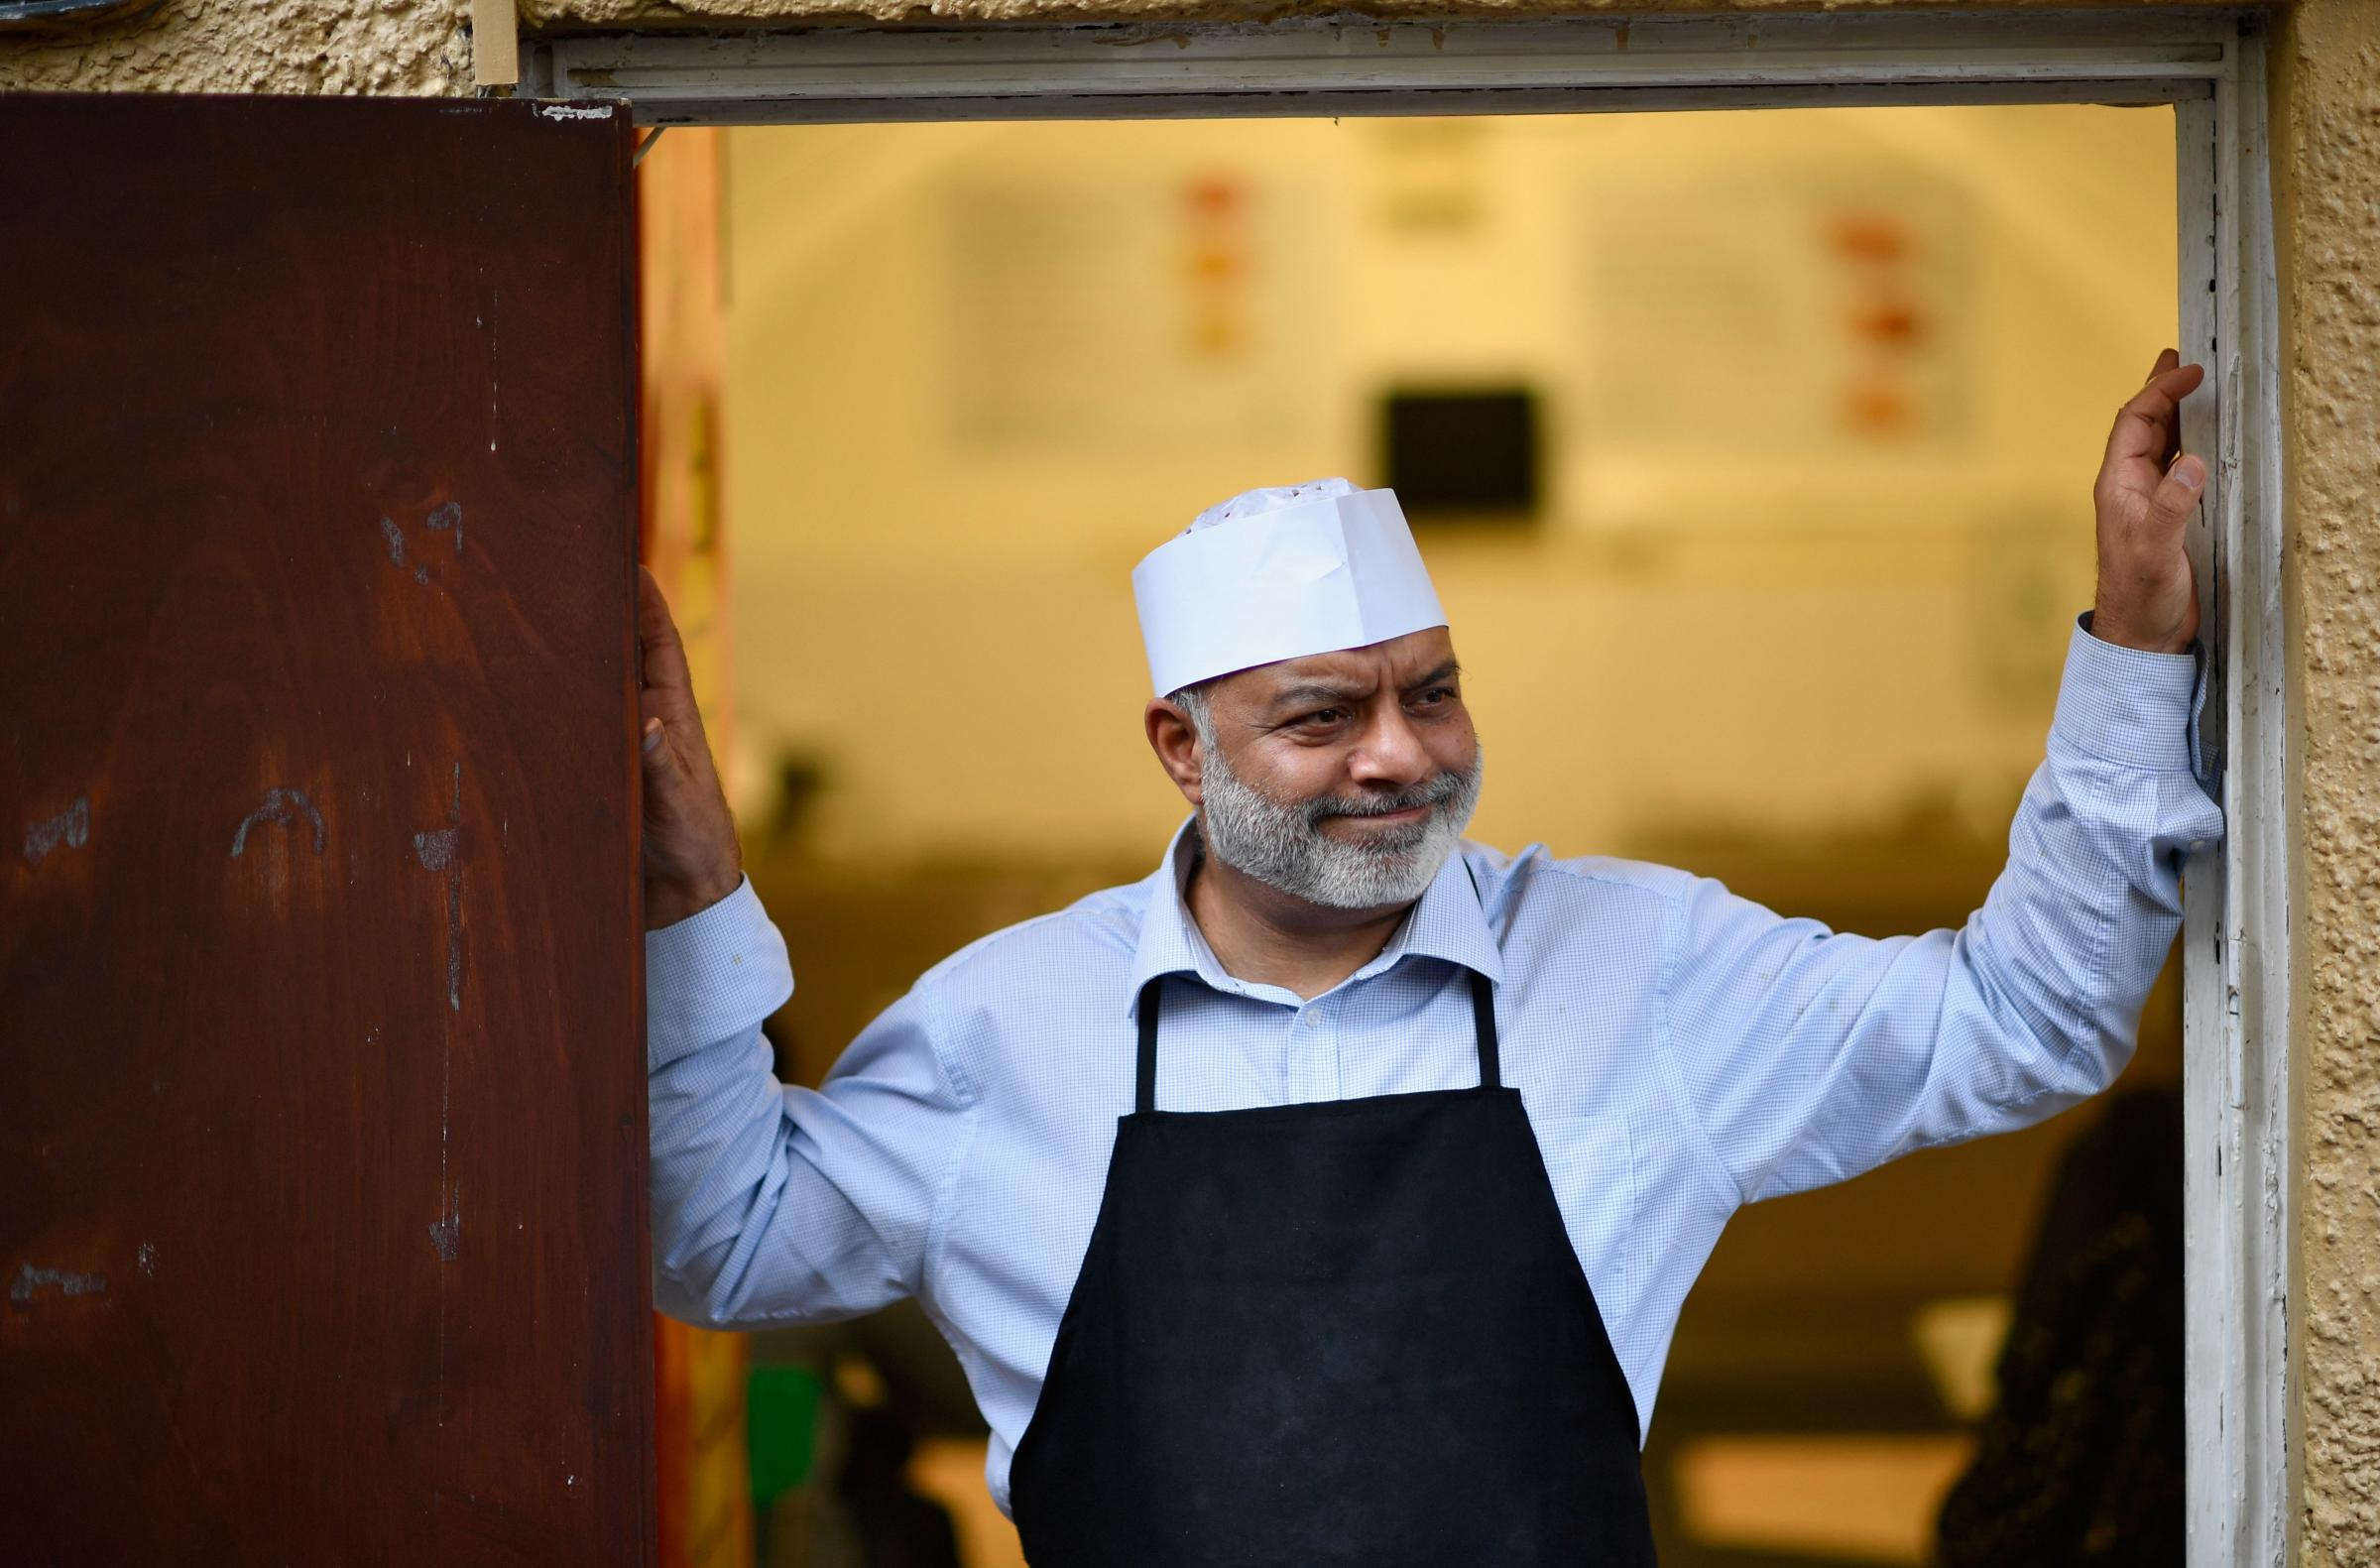 EDINBURGH, SCOTLAND - OCTOBER 28:  Fazal Malik works at the Mosque Kitchen on October 28, 2016 in Edinburgh, Scotland. A recent census showed findings that after Christianity, Islam was the most common faith with seventy seven thousand people in Scotland